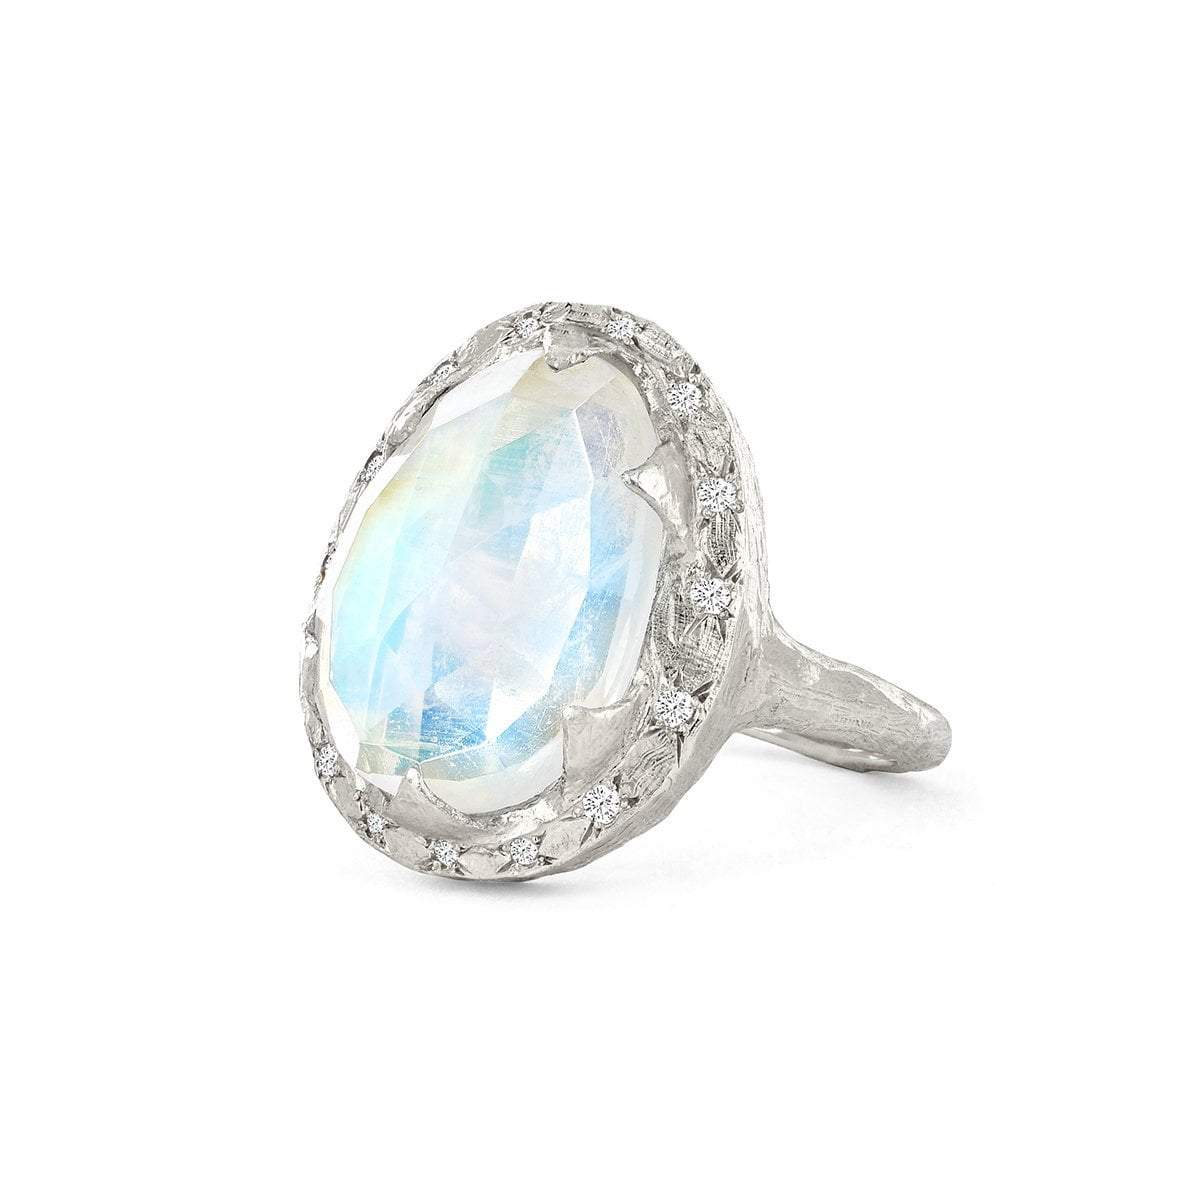 Queen Premium Rosecut Oval Moonstone Ring with Sprinkled Diamonds